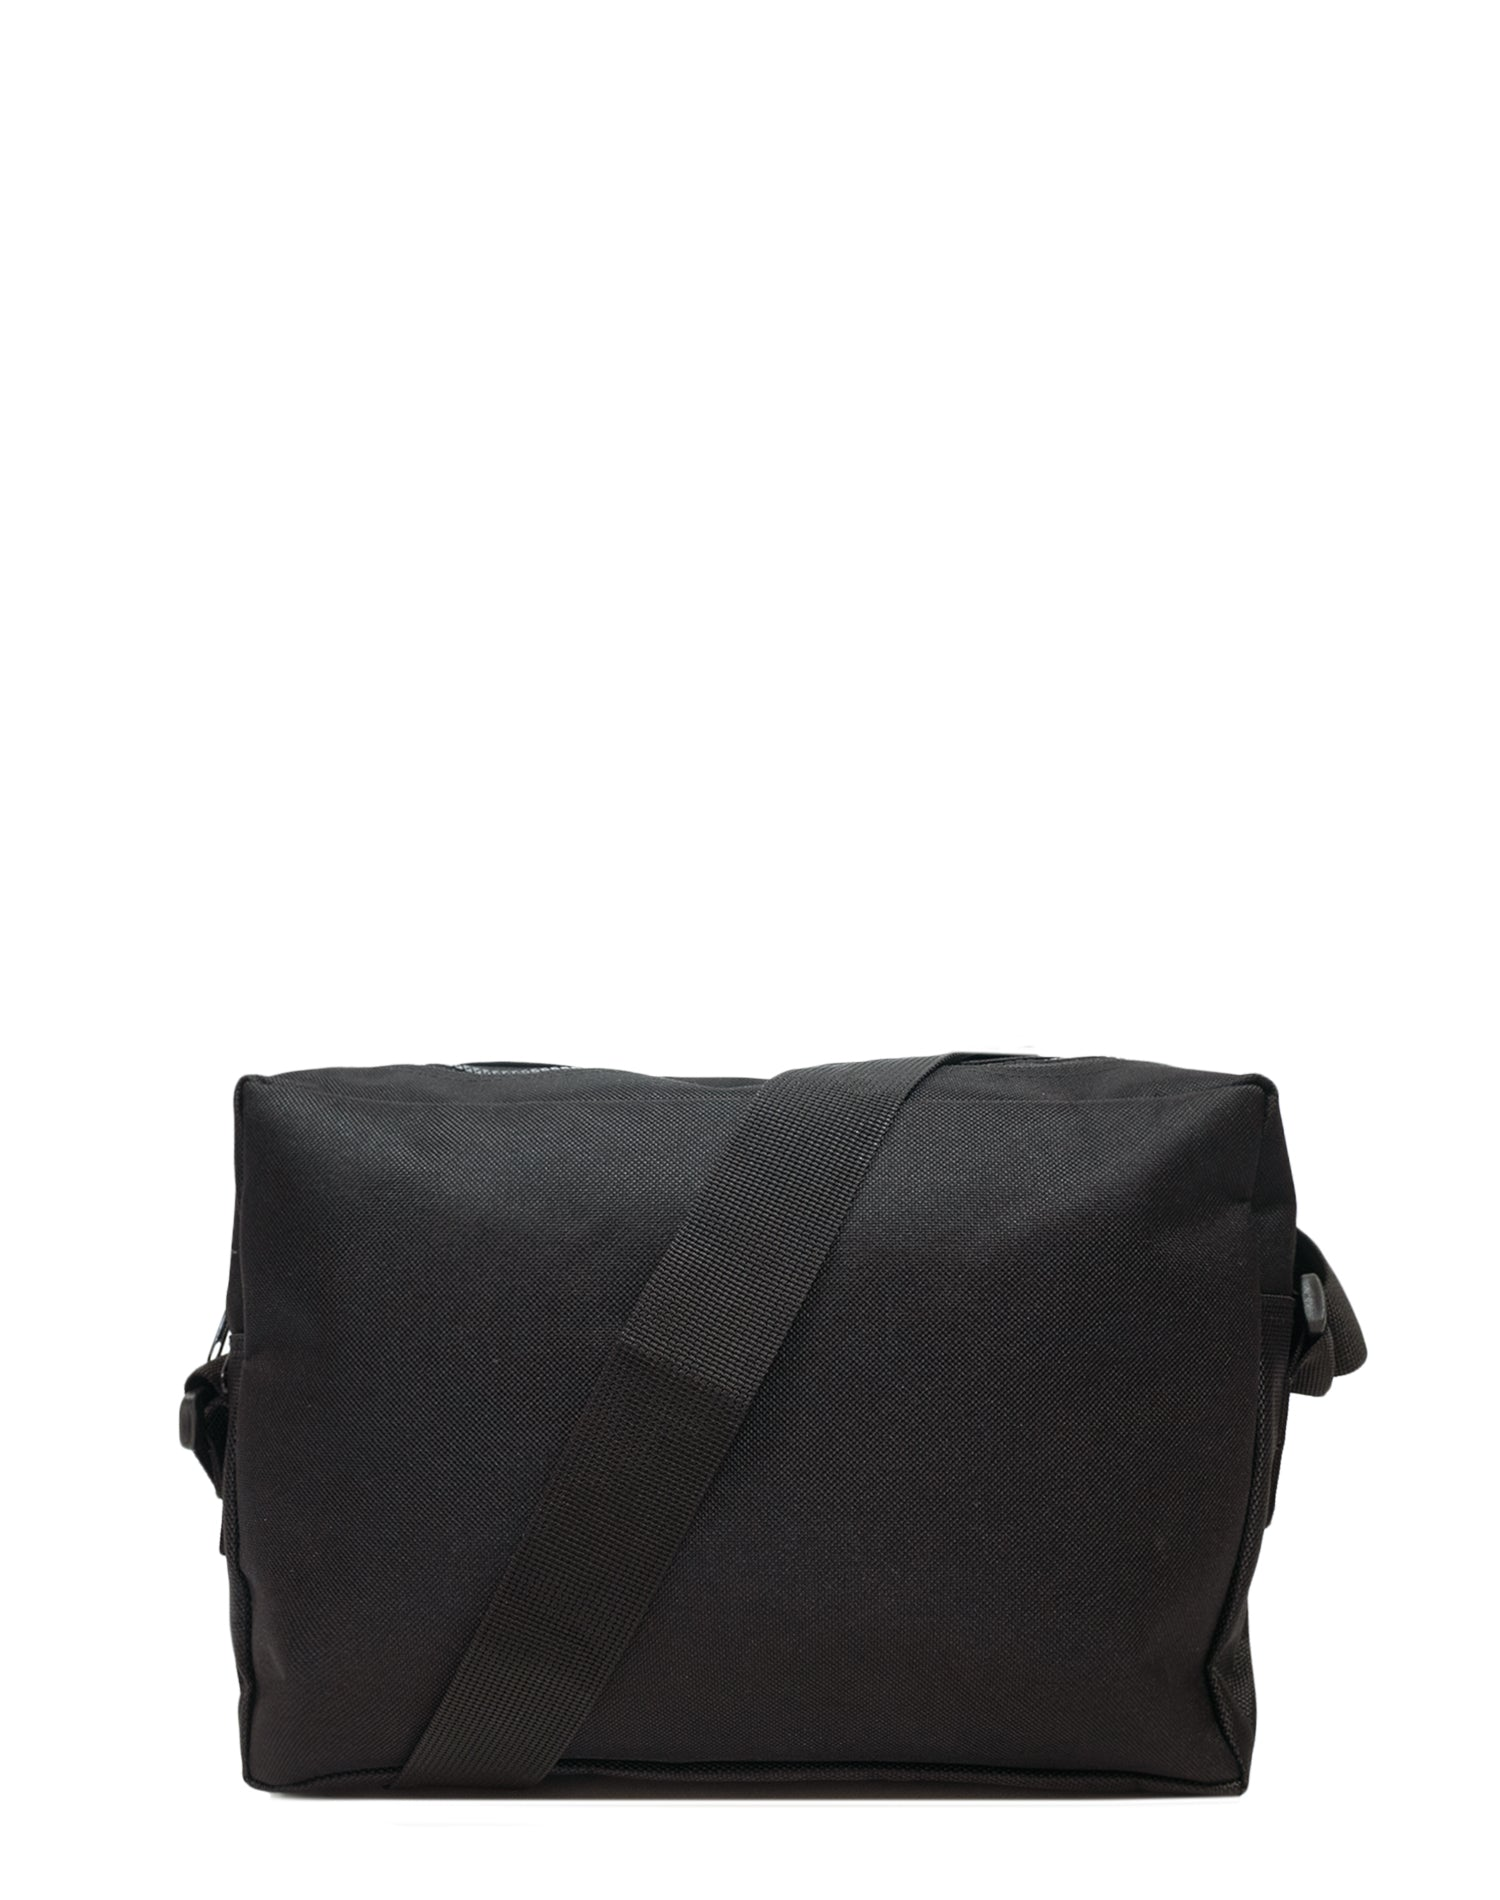 Black Canvas Shoulder Bag.黑色帆布斜揹袋